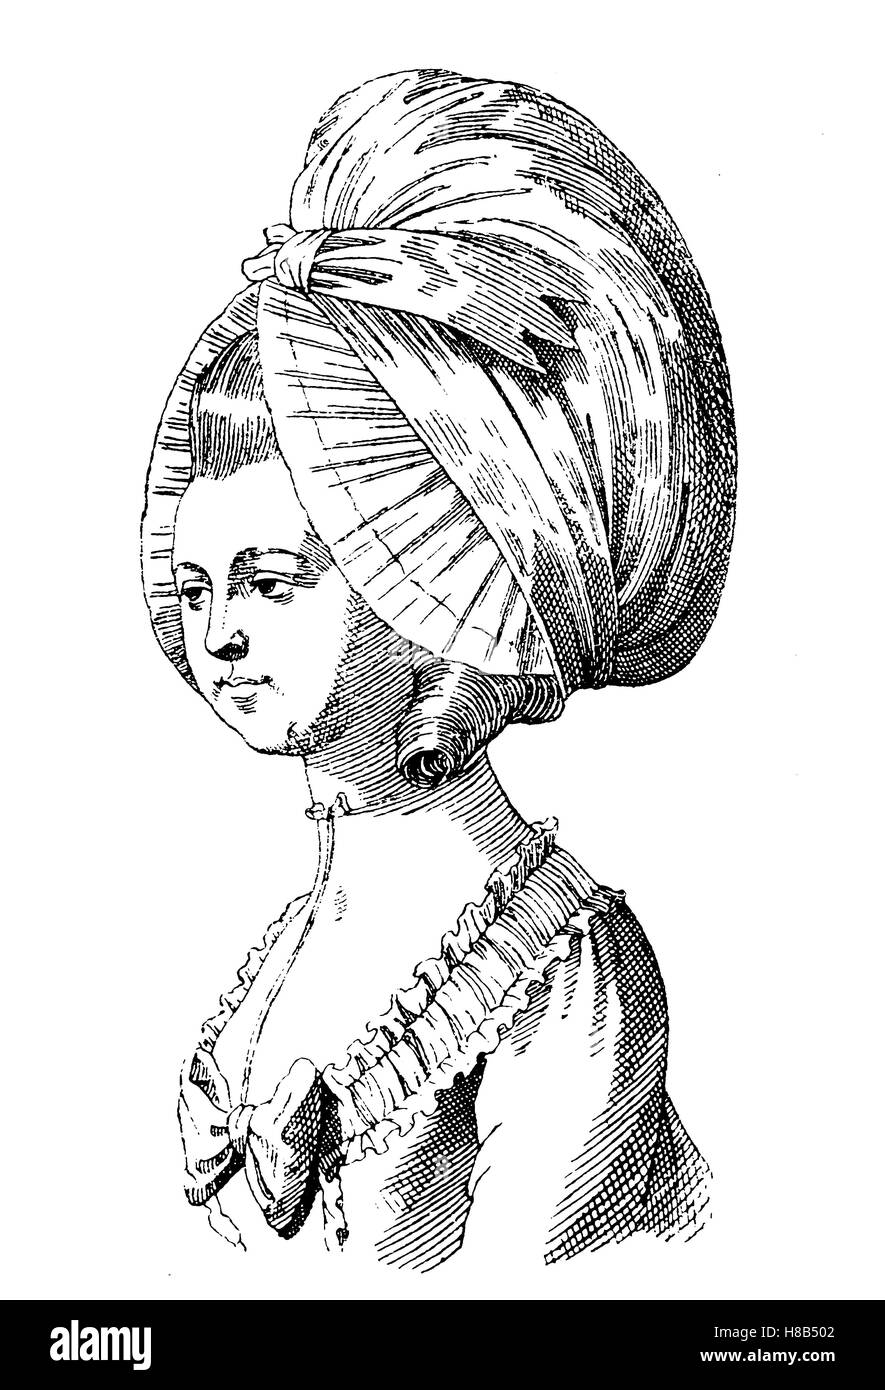 head of a lady with a Dormeuse, woman from Paris at the beginning of the revolution, History of fashion, costume - Stock Image